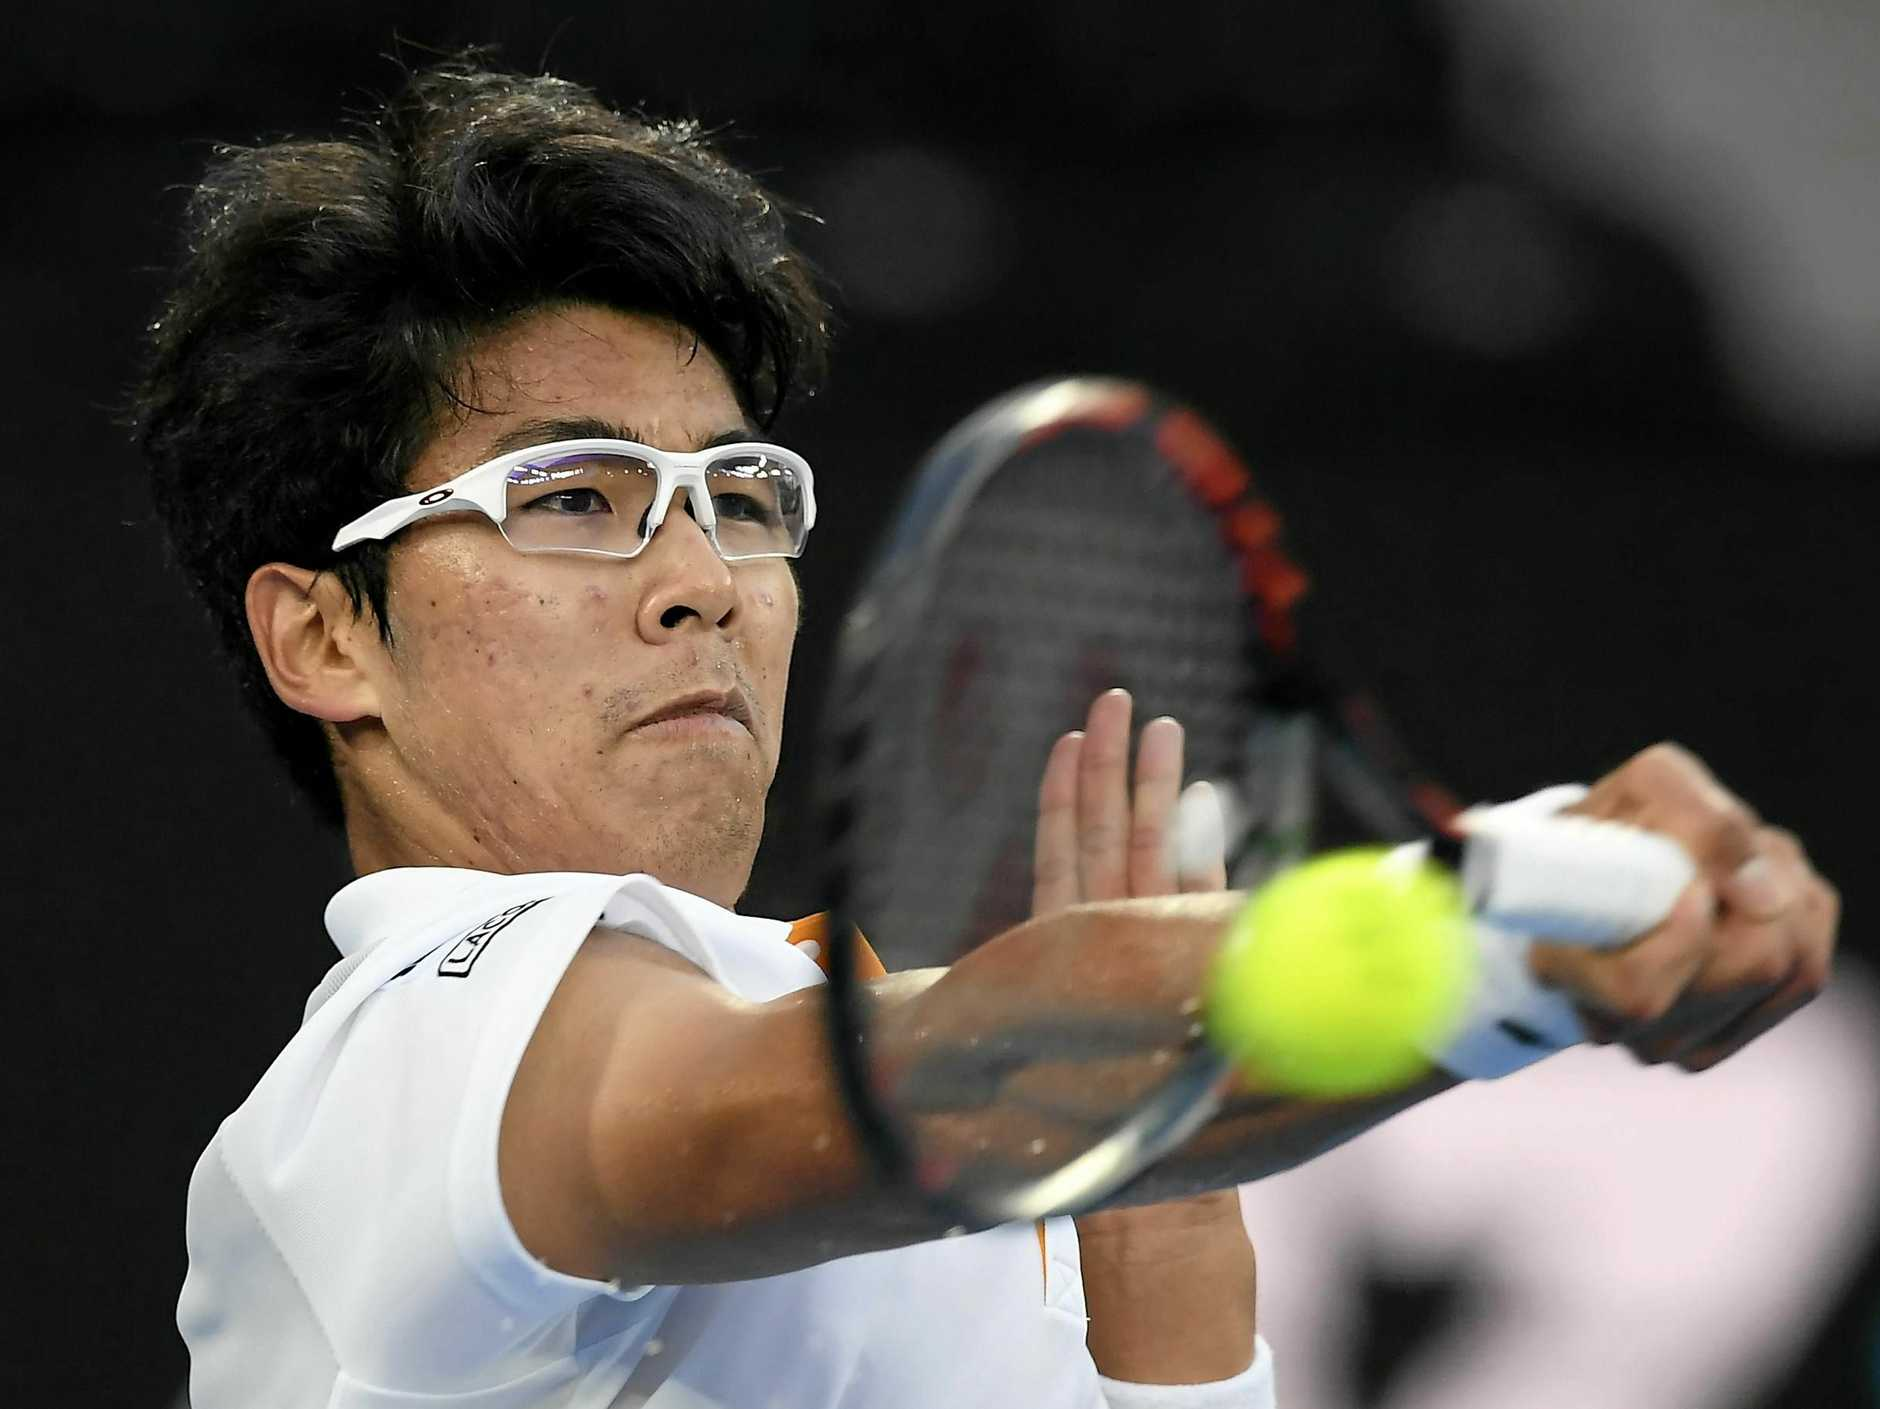 Chung Hyeon drills a forehand return against Serbia's Novak Djokovic.